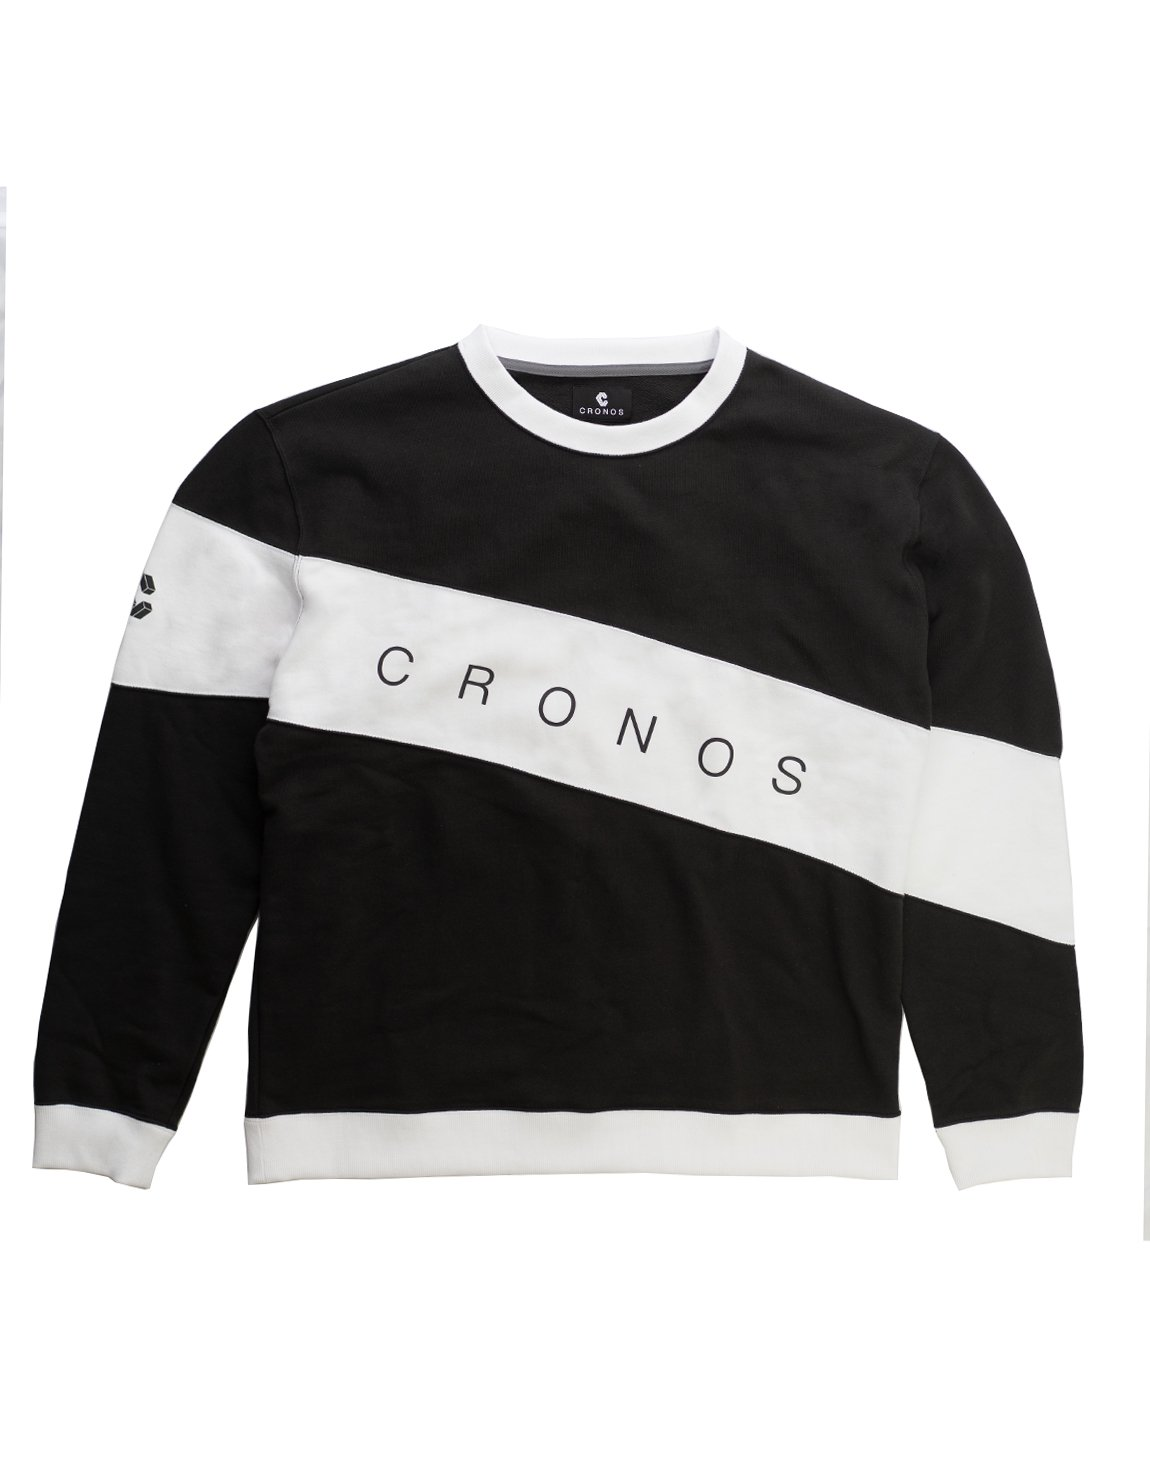 <img class='new_mark_img1' src='https://img.shop-pro.jp/img/new/icons1.gif' style='border:none;display:inline;margin:0px;padding:0px;width:auto;' />CRONOS FRONT THICK LINE TRAINER【BLACK】